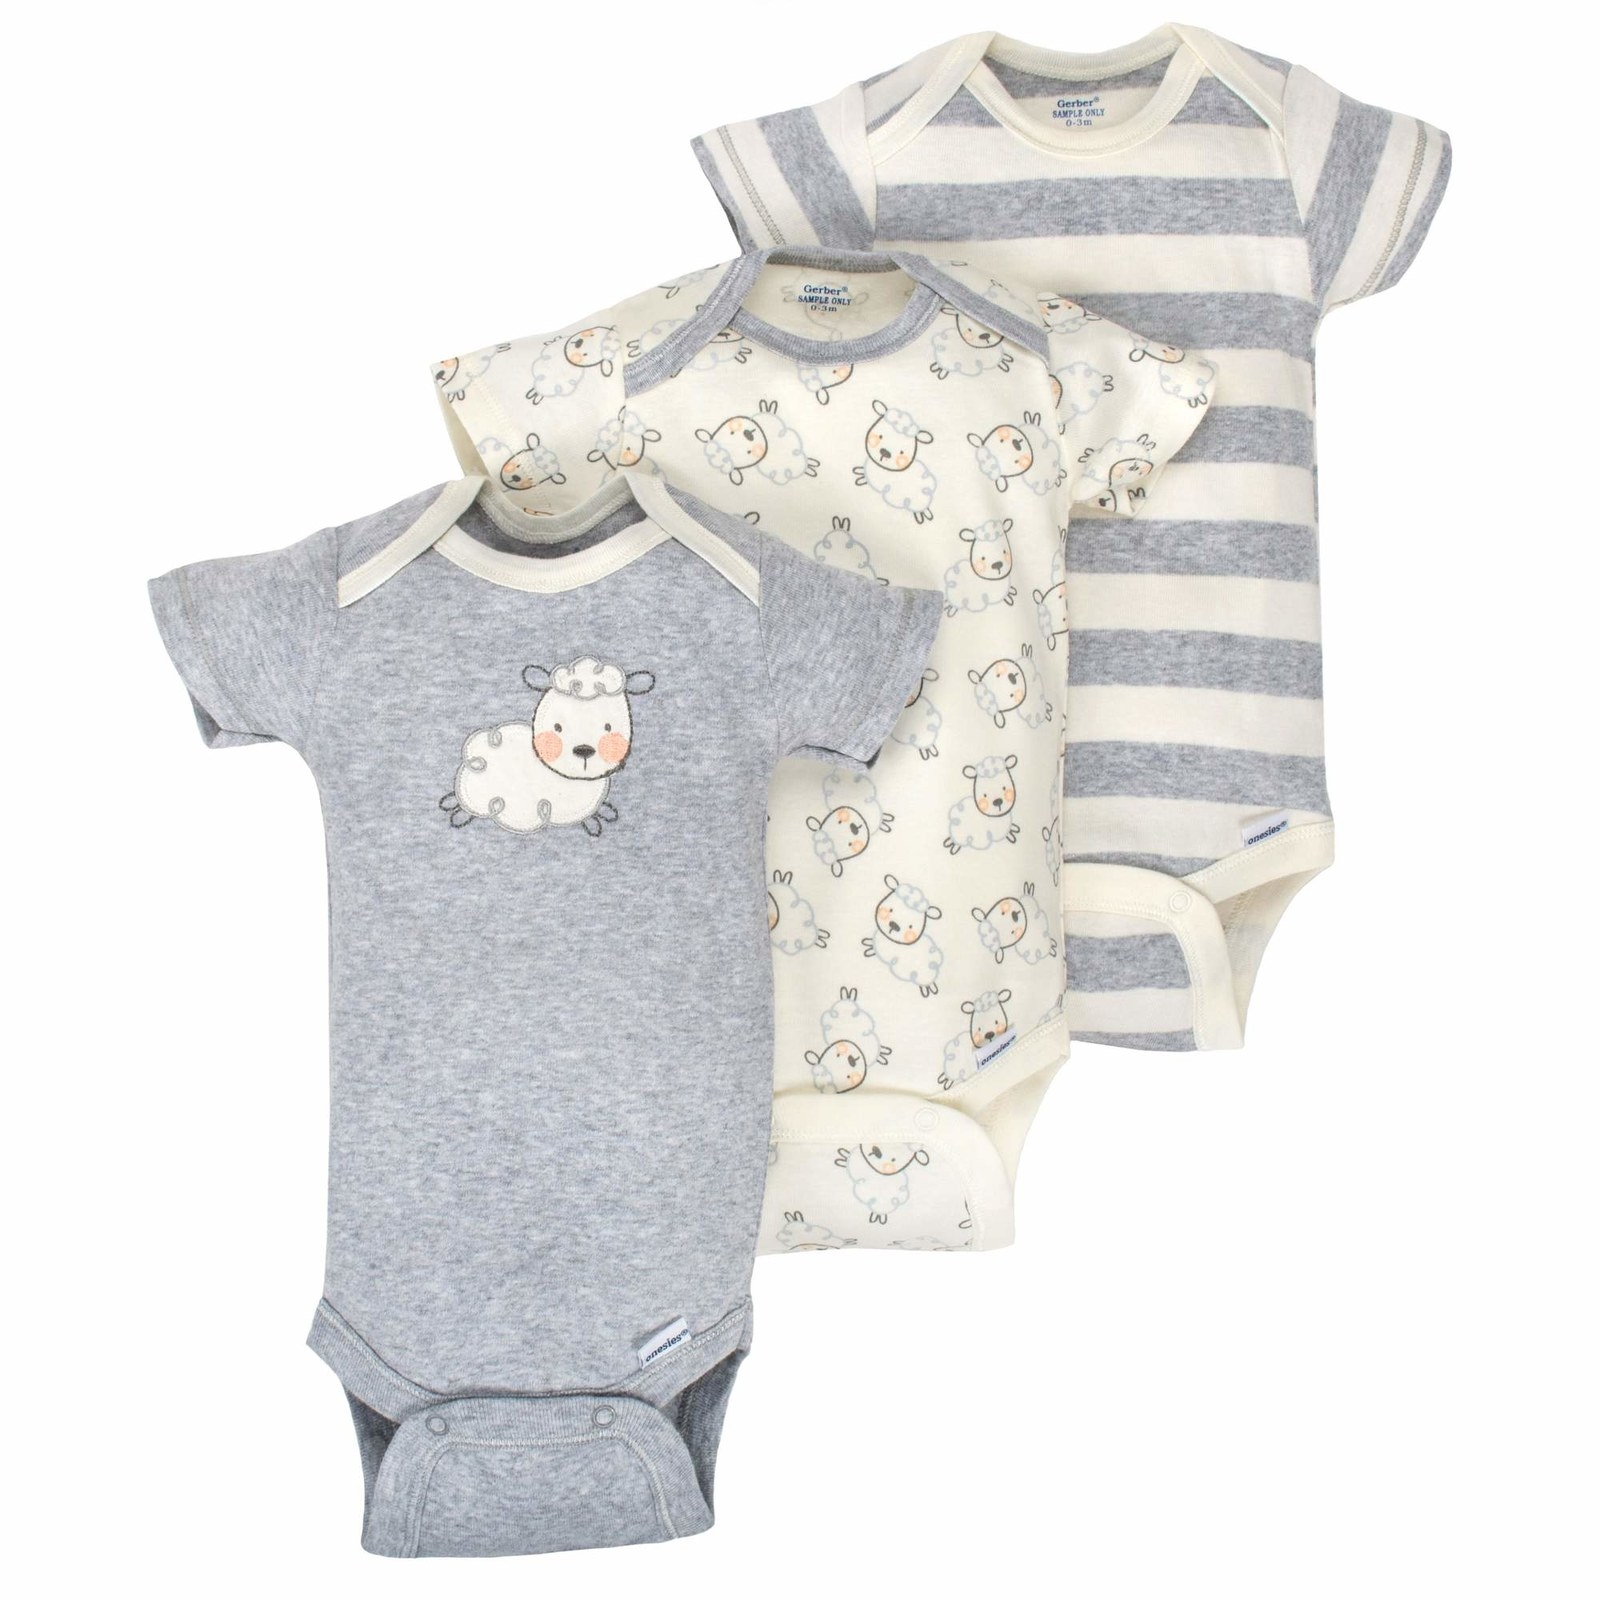 0e0f91310 A set of little lamb onesies, coordinating leggings, and matching hats  that'll remind the new parents of you every time they pull it out of the  closet.